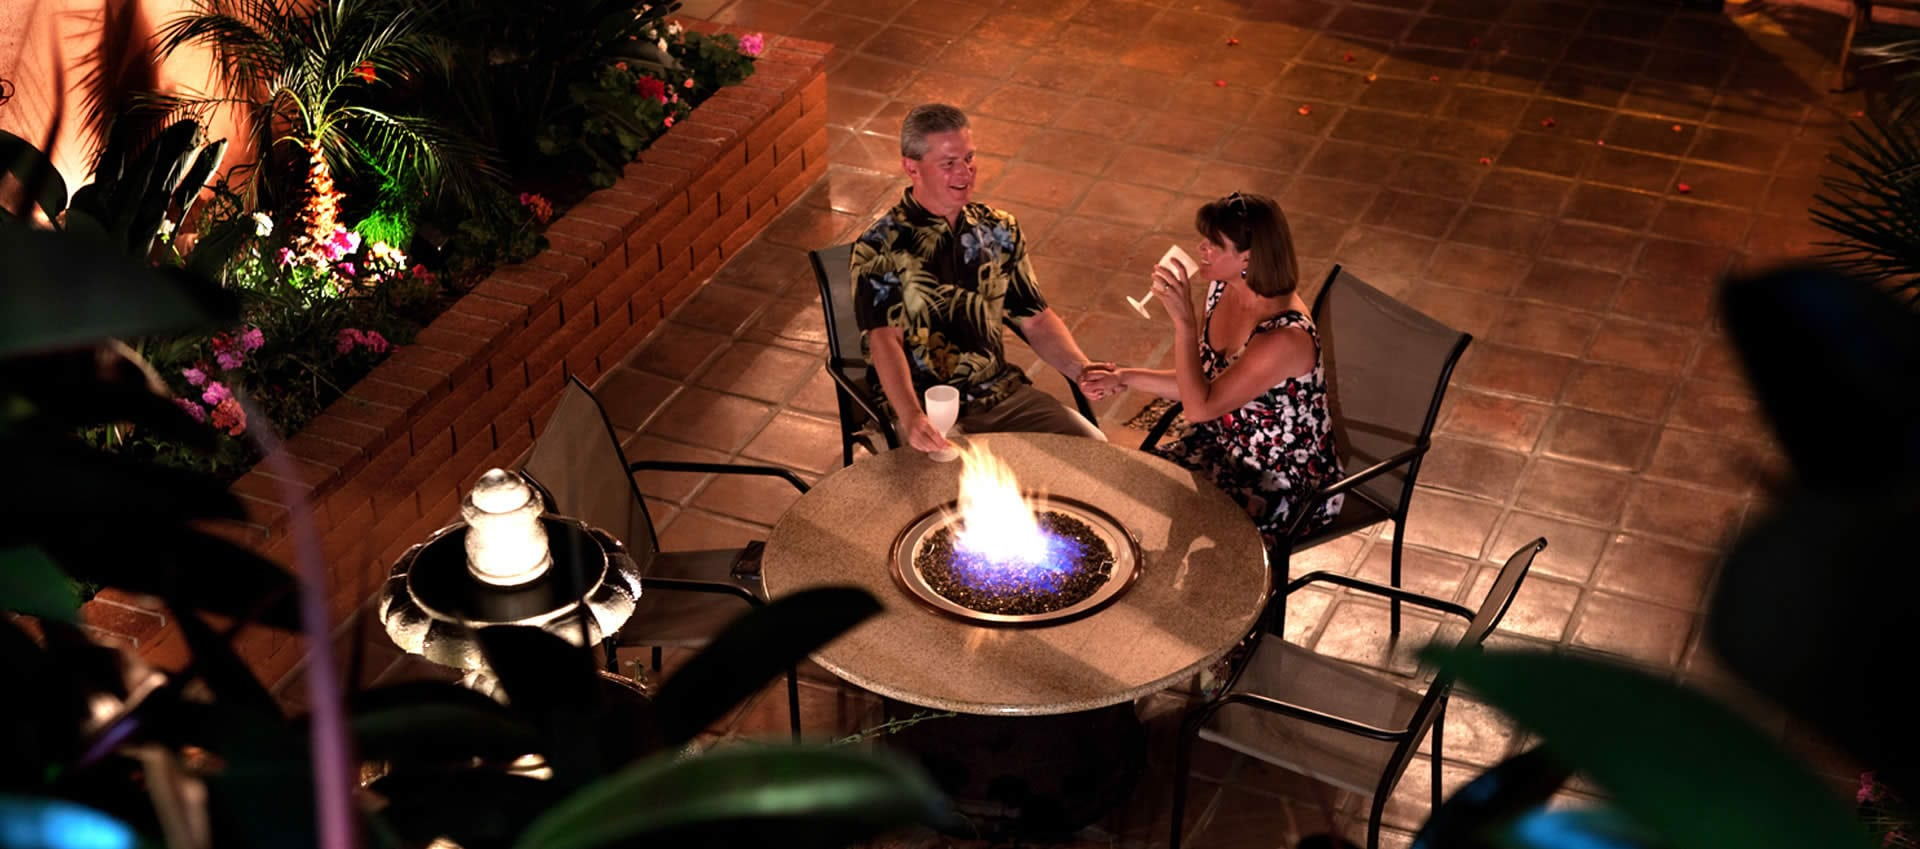 Patio fire ring with guests enjoying drinks